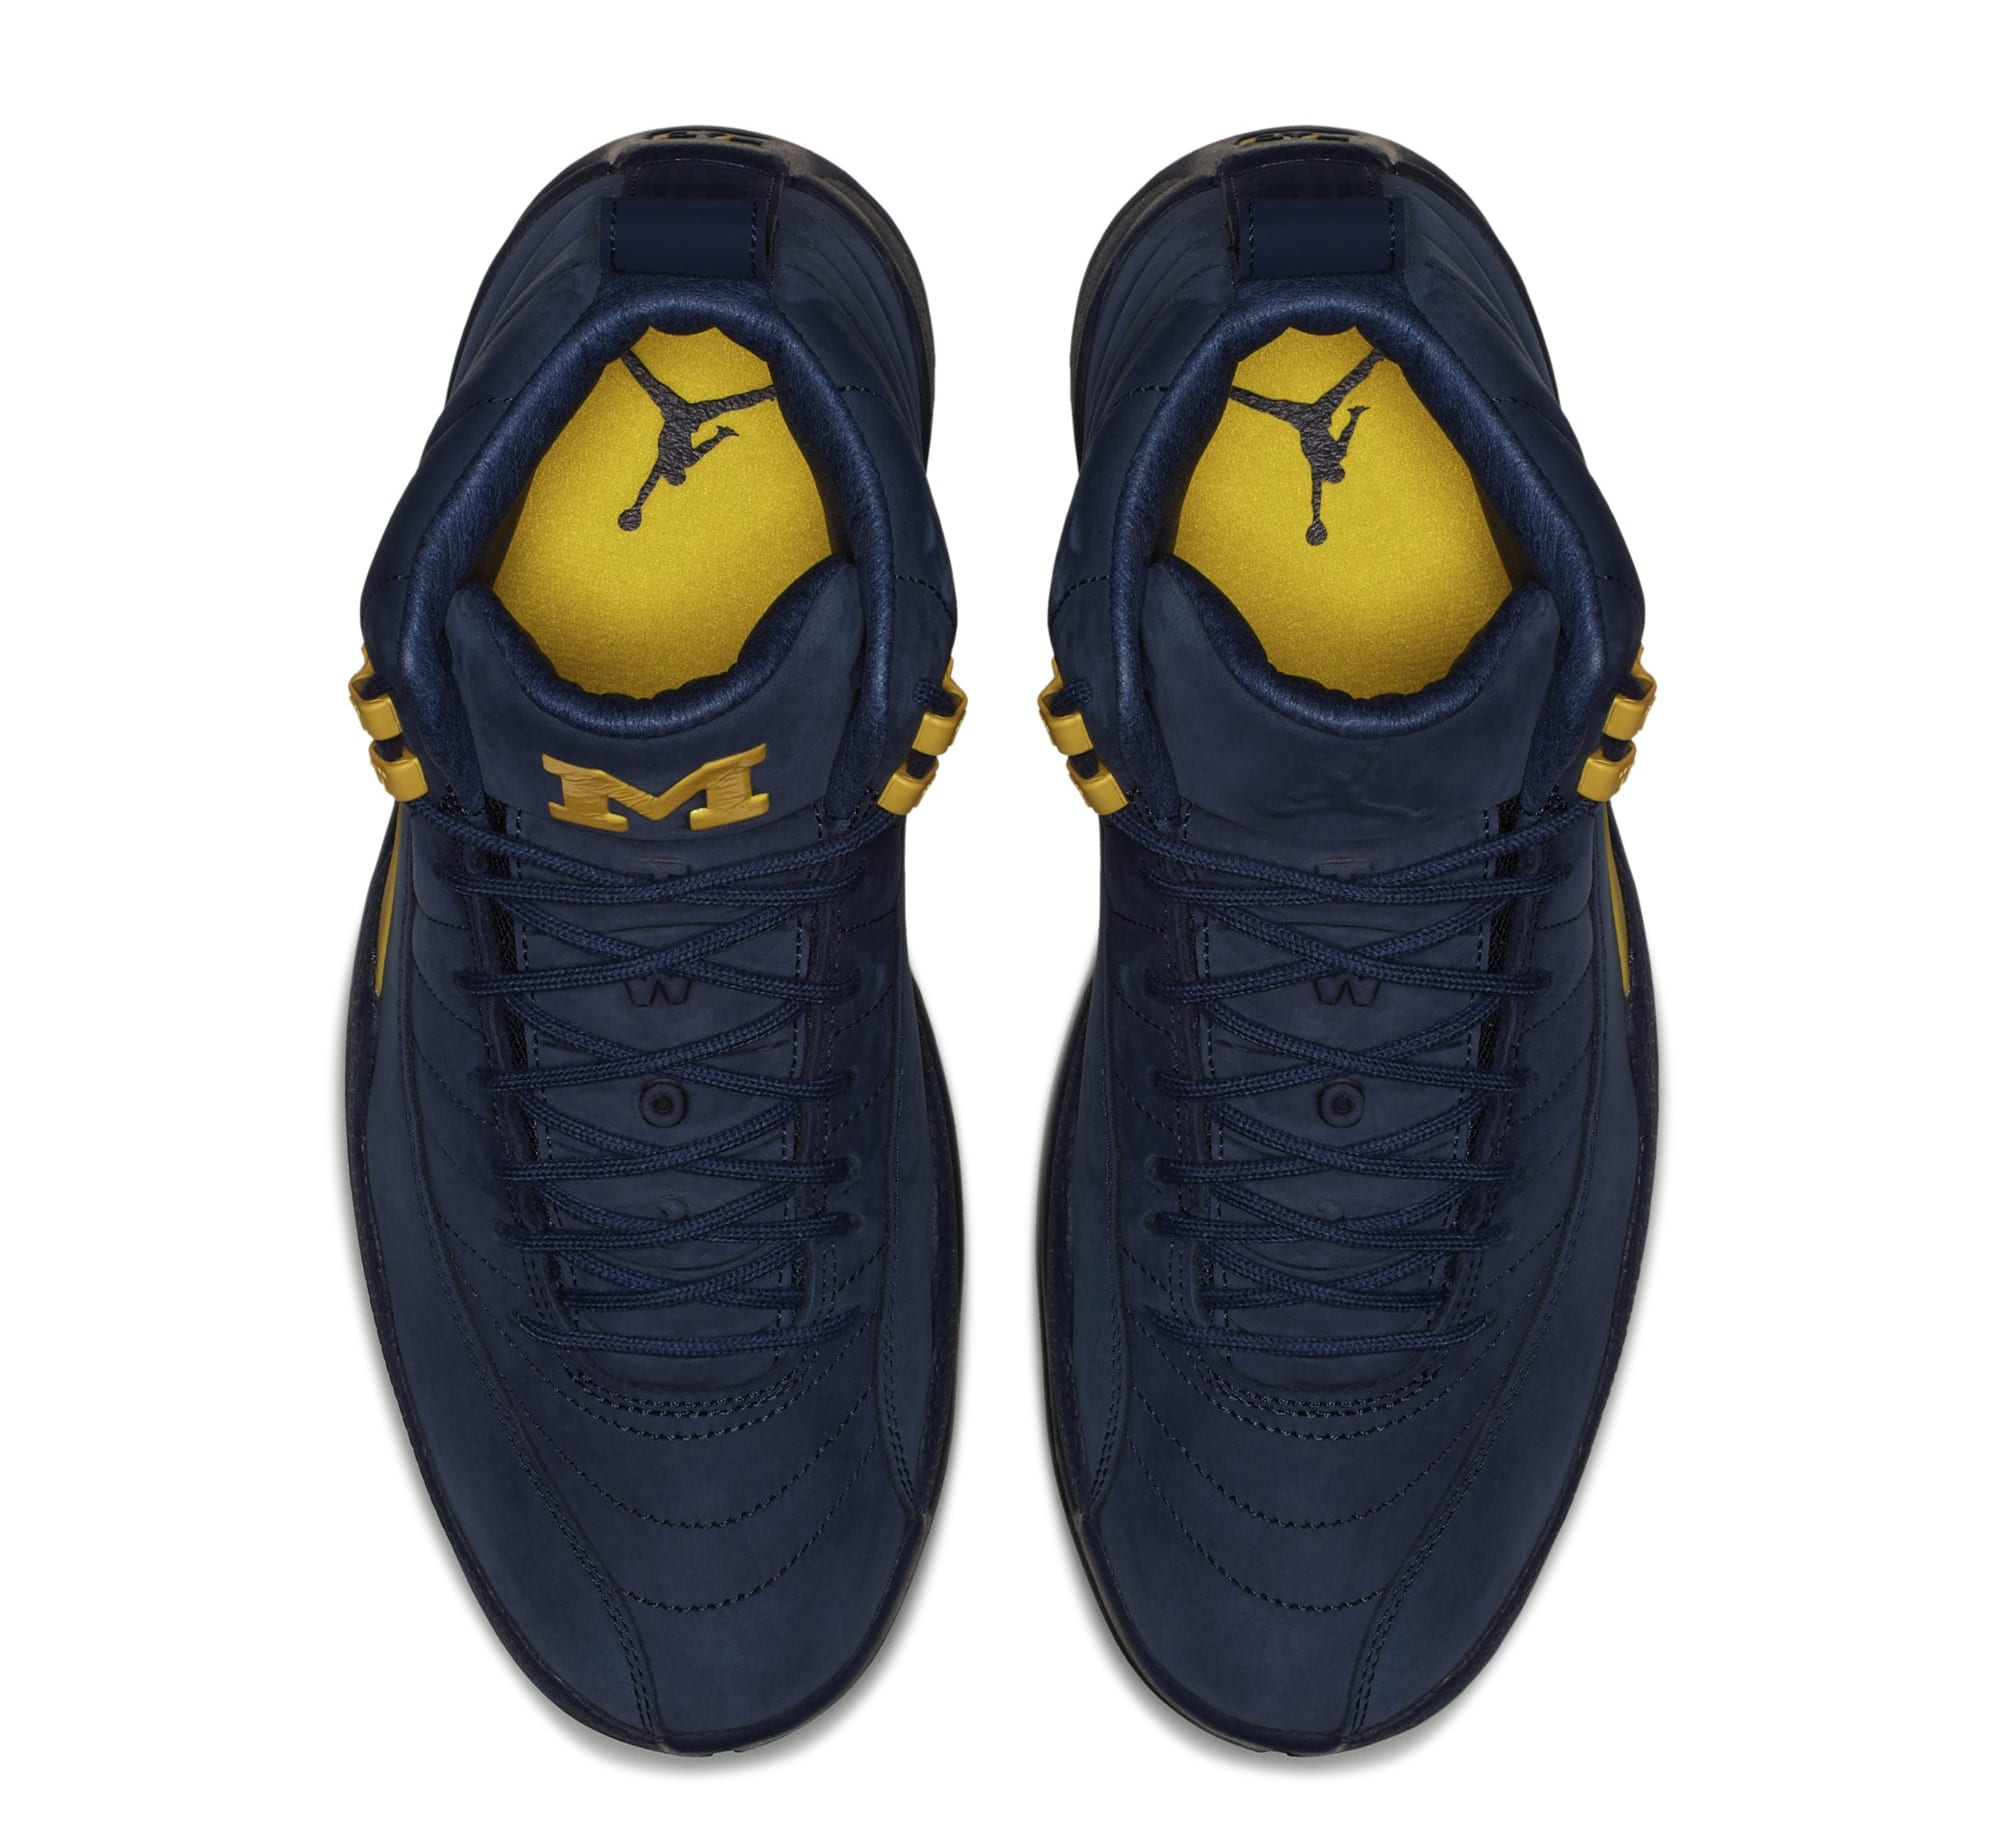 Air Jordan 12 'Michigan' BQ3180-407 (Top)